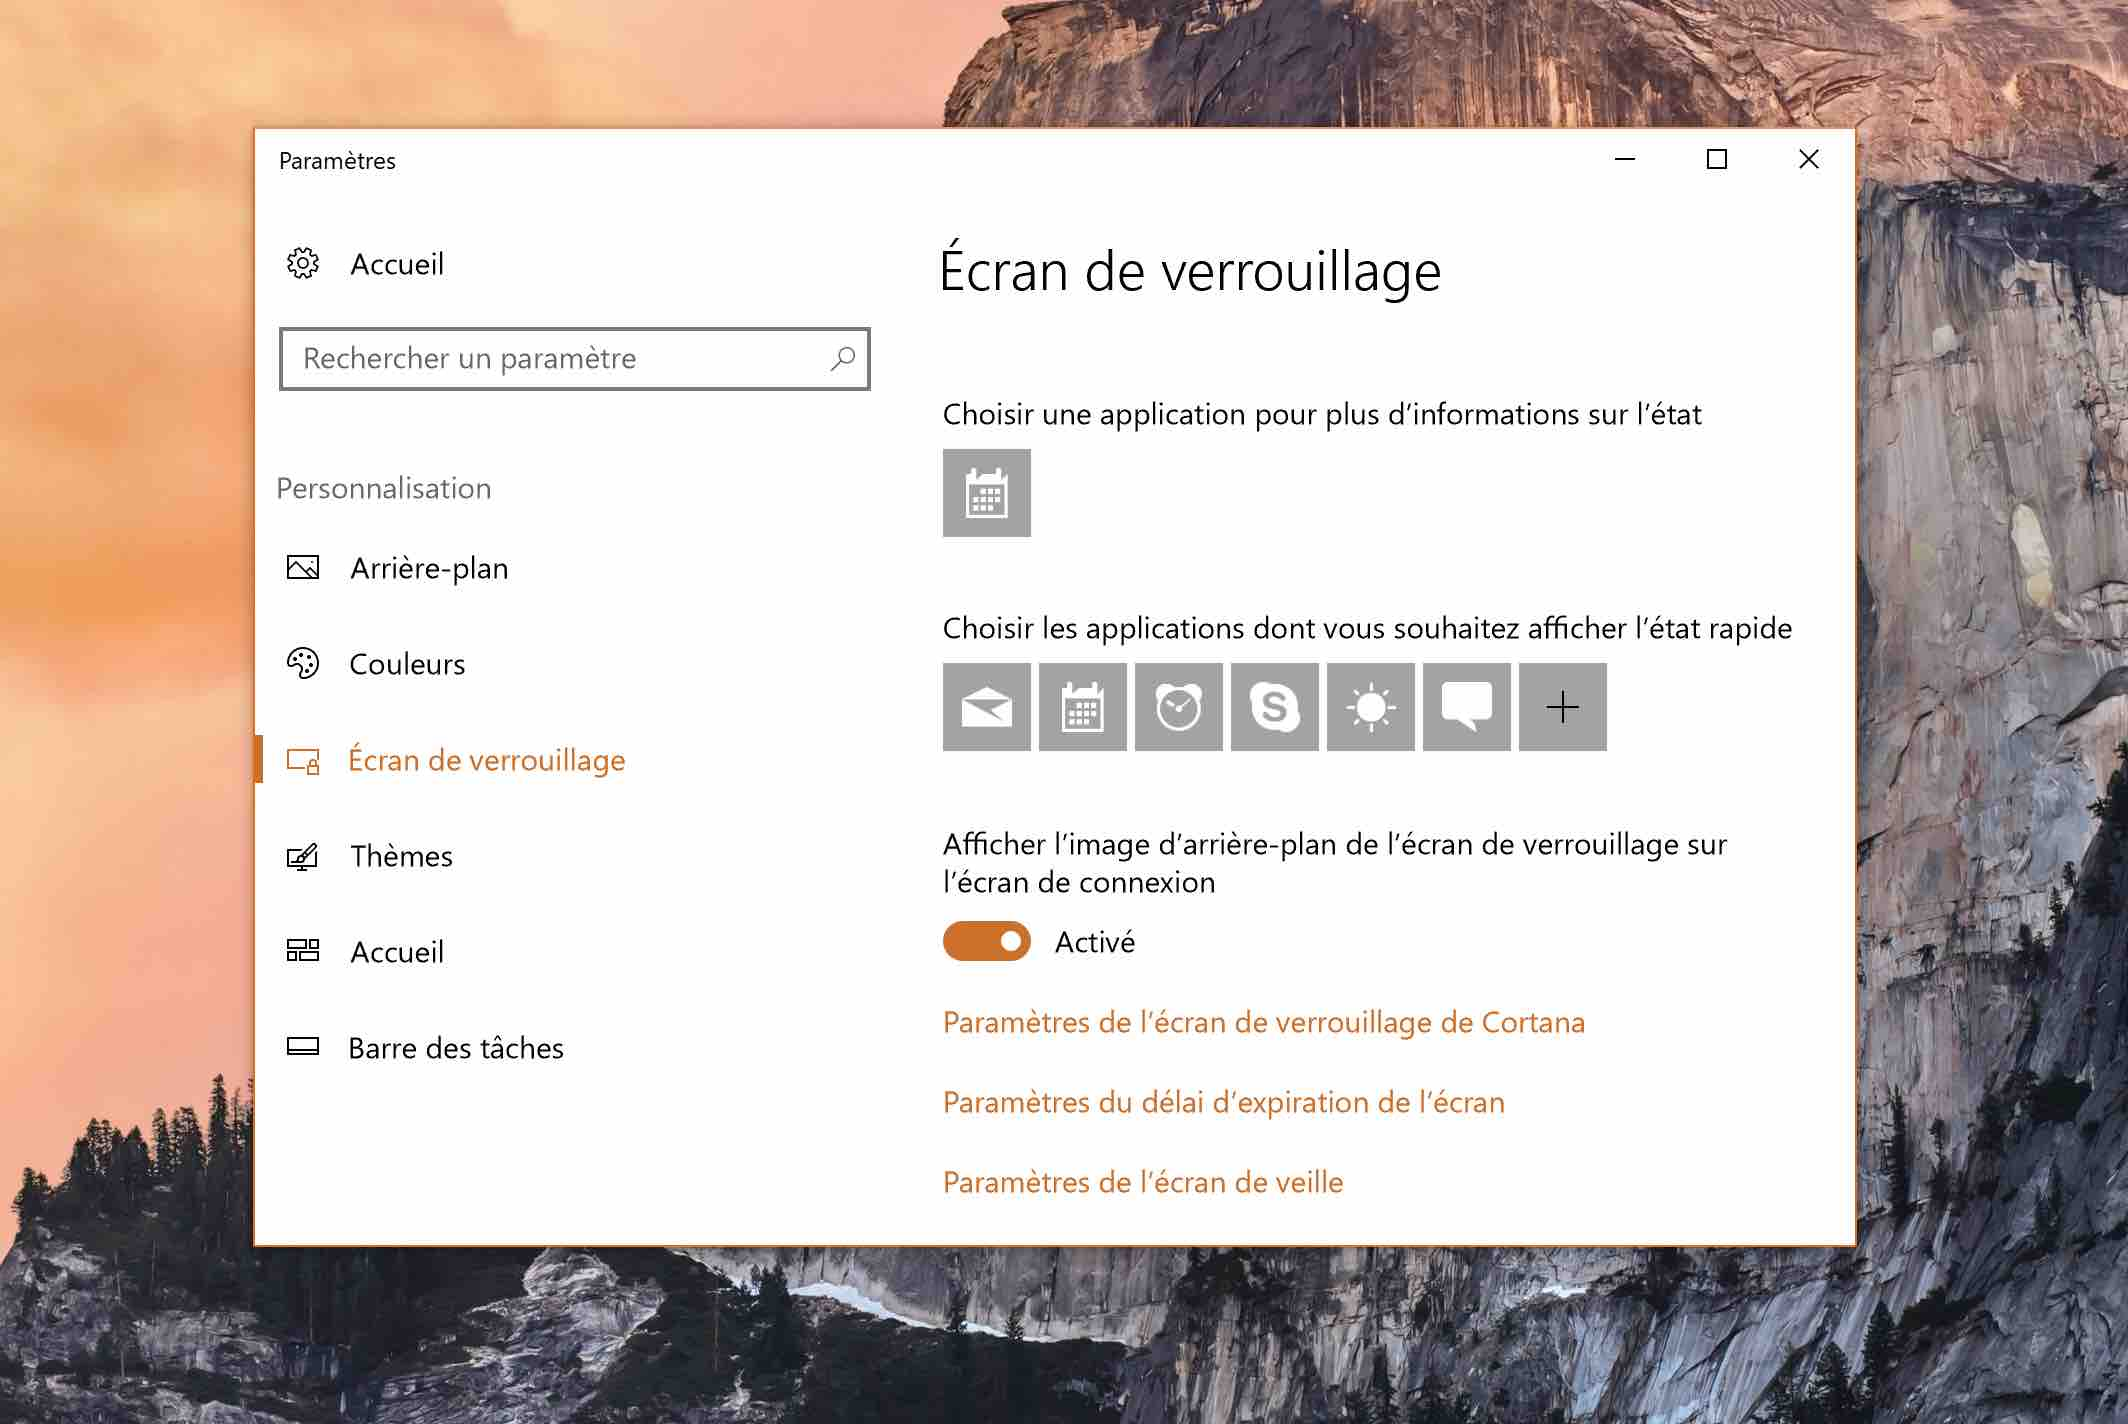 windows 10 parametres ecran verrouillage applications